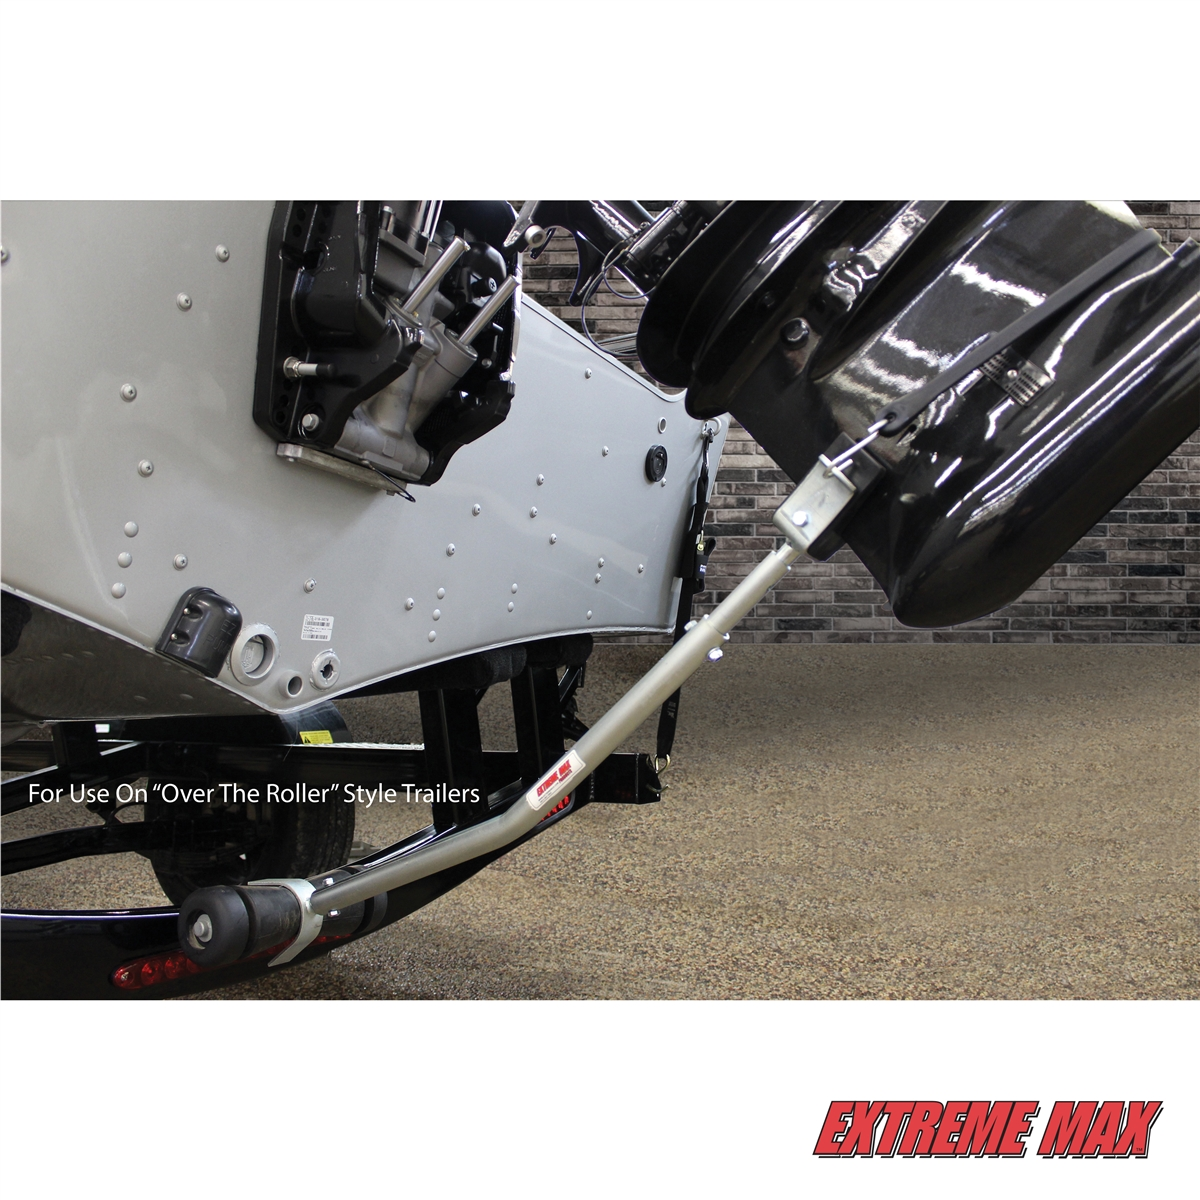 Extreme max transom saver for Best outboard motor warranty